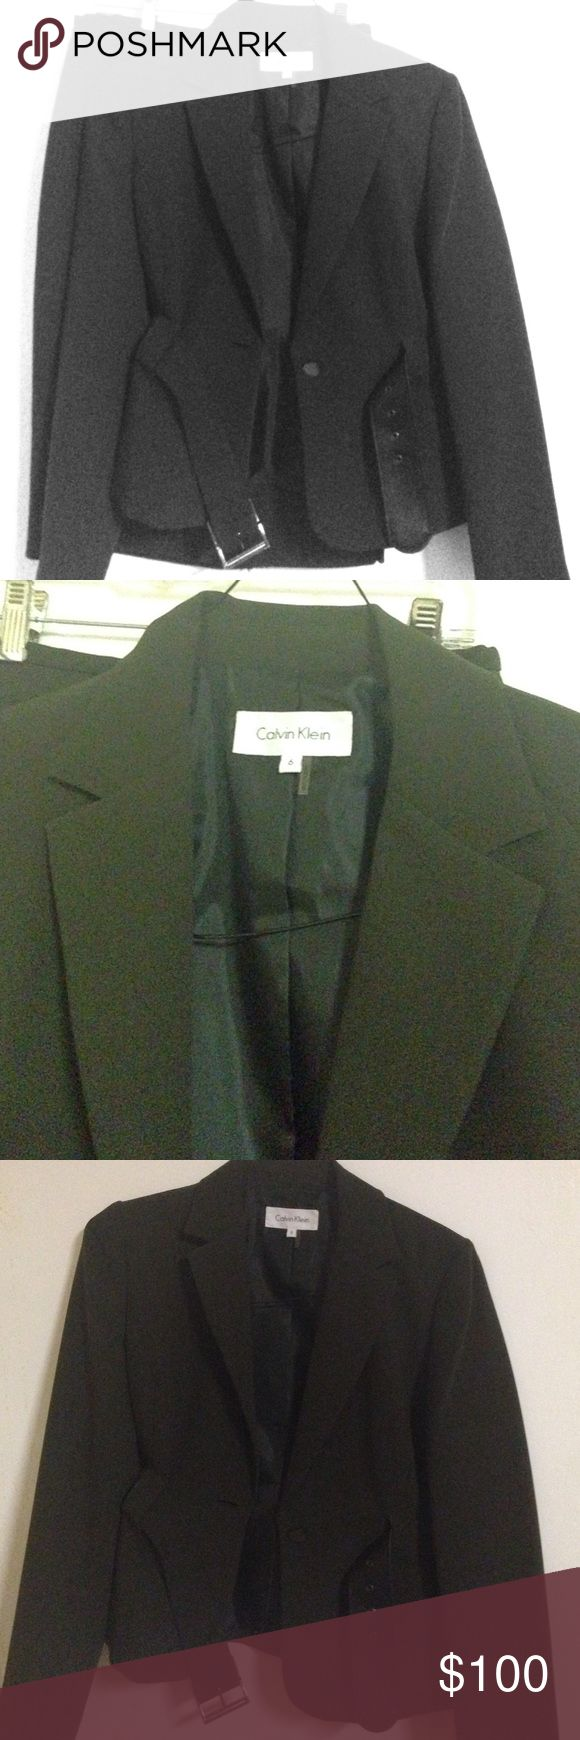 Classy Suit Beautiful suit (blazer and skirt), very classy, perfect for any occasion, modest, NEW! Calvin Klein Other